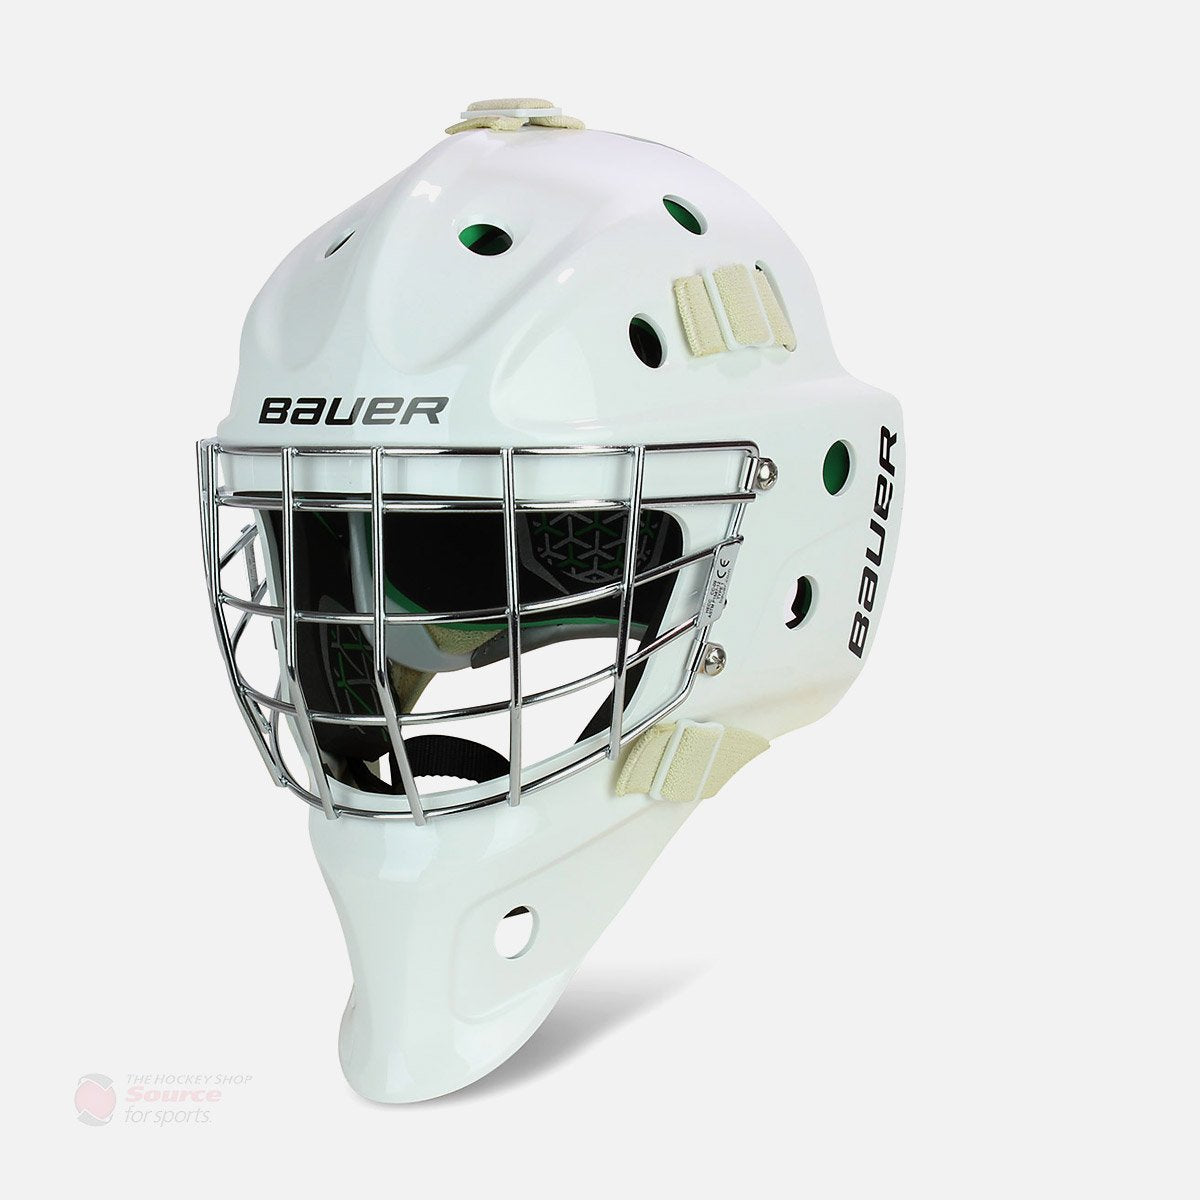 Bauer NME 4 Senior Goalie Mask - White